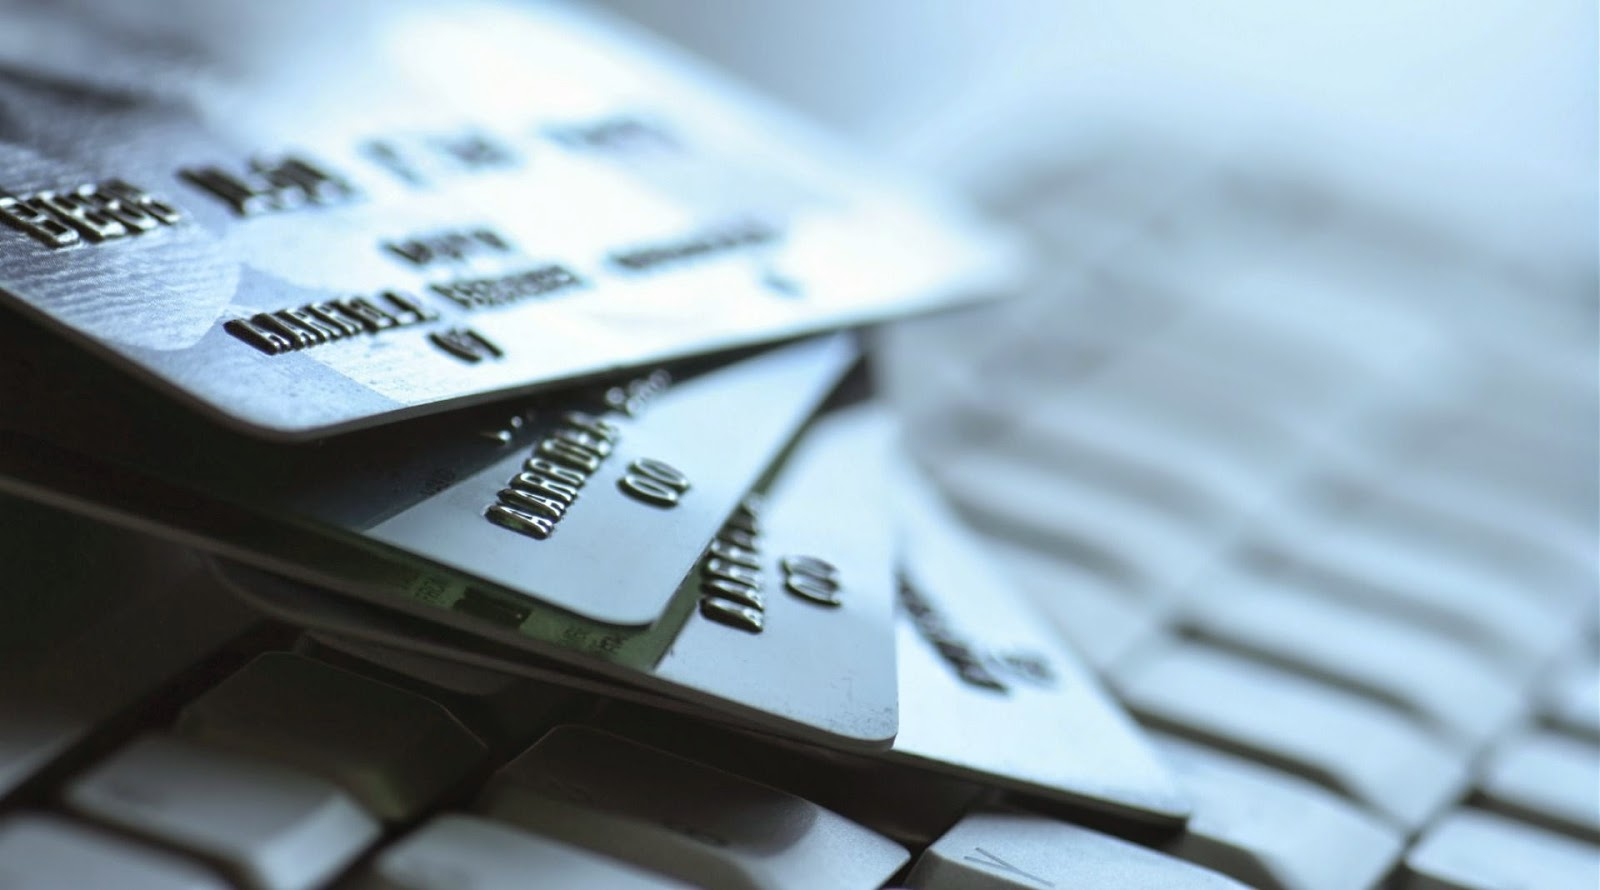 Our short term memory is worse than we think. That is why banks break up the card number into sets of four.